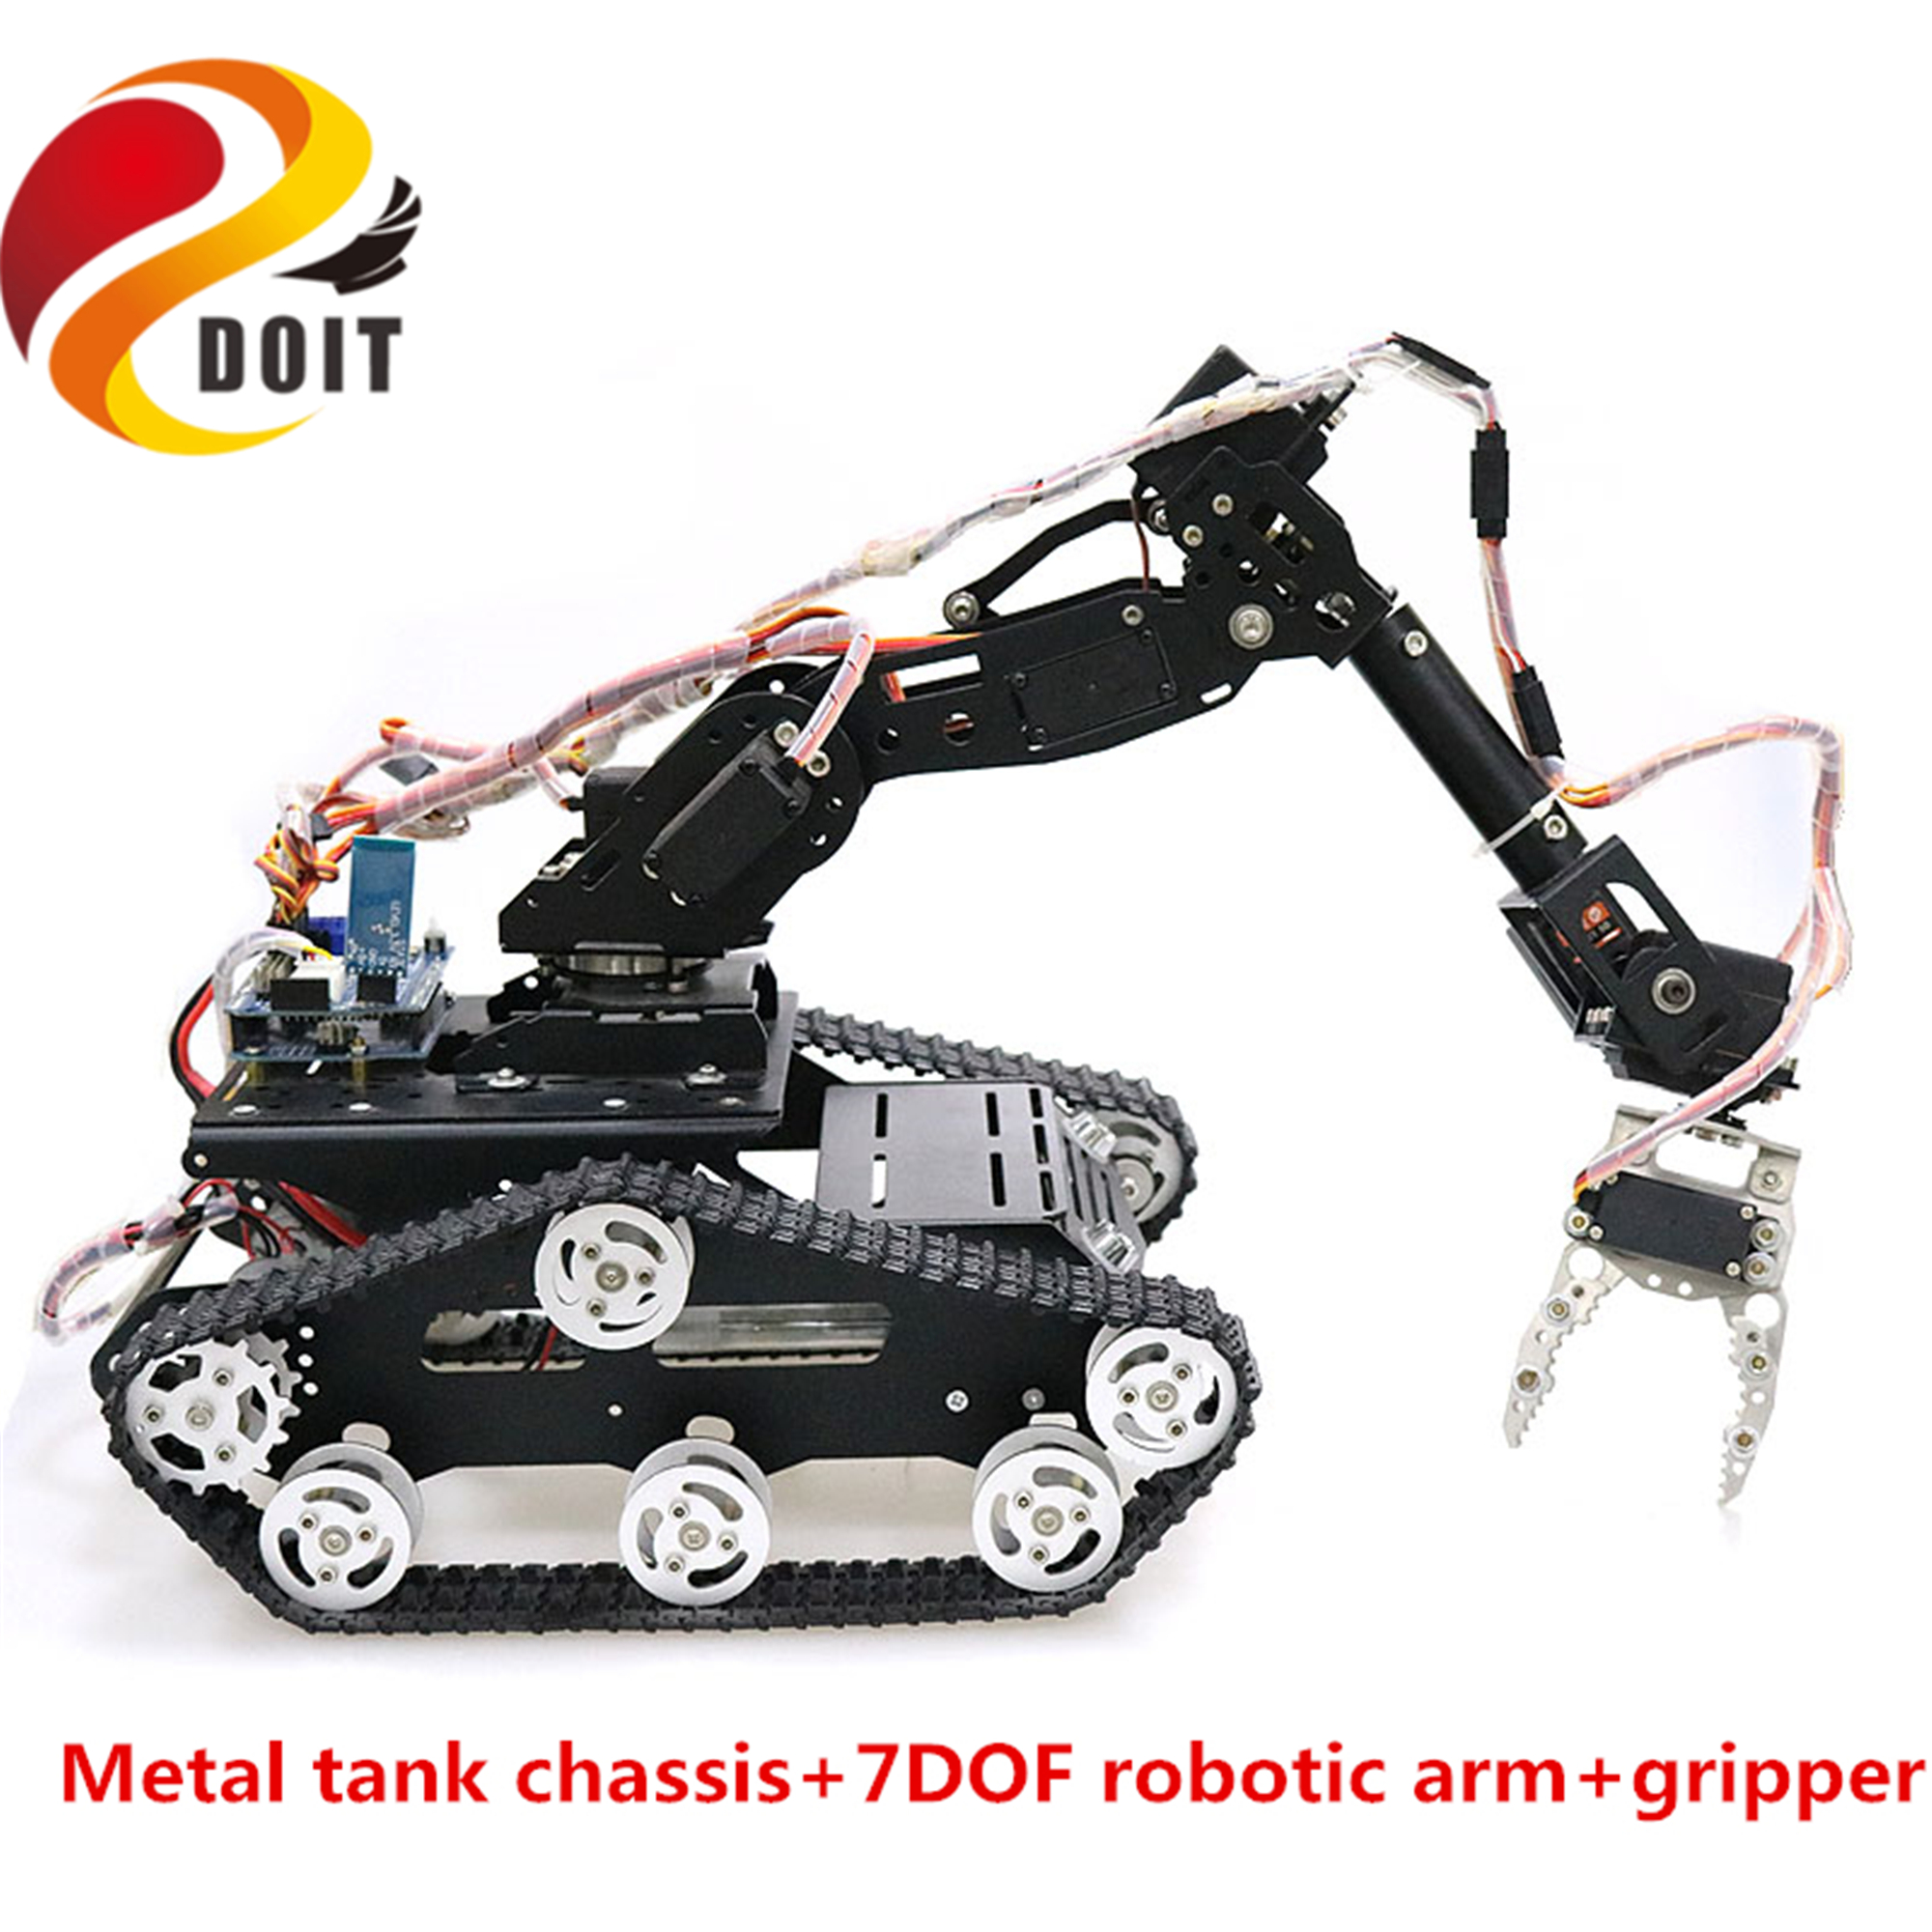 SZDOIT 7DOF Metal Vehicle Robot Mobile Platform 7-Axis Robotic Arm with Gripper + Y100 Tracked Tank Chassis Kit DIY for Arduino